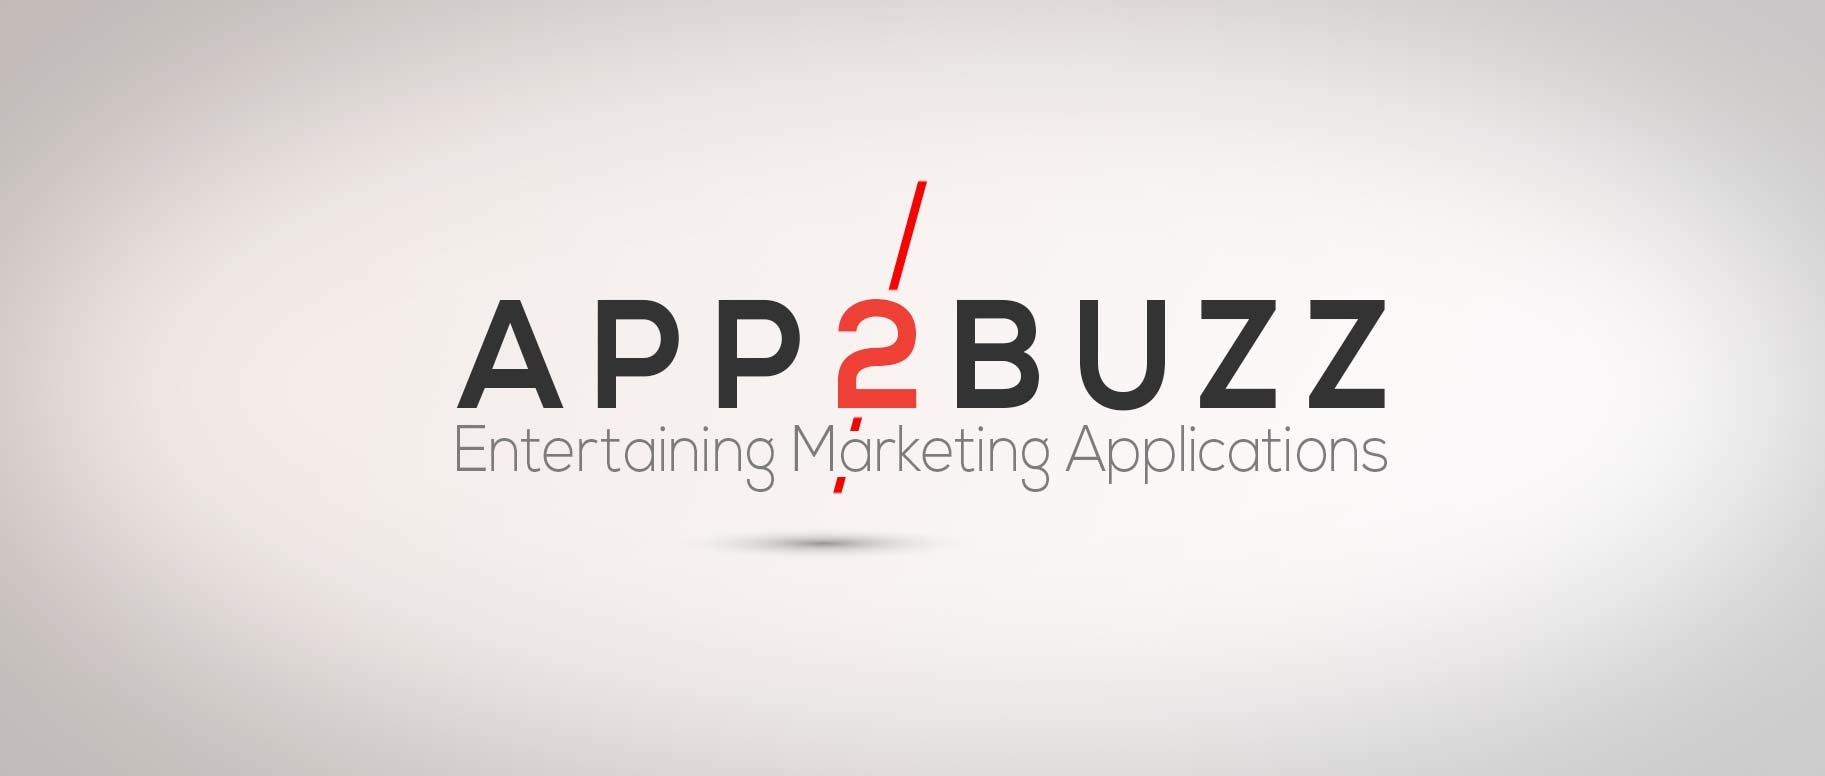 app2buzz-logo-backside-pixels